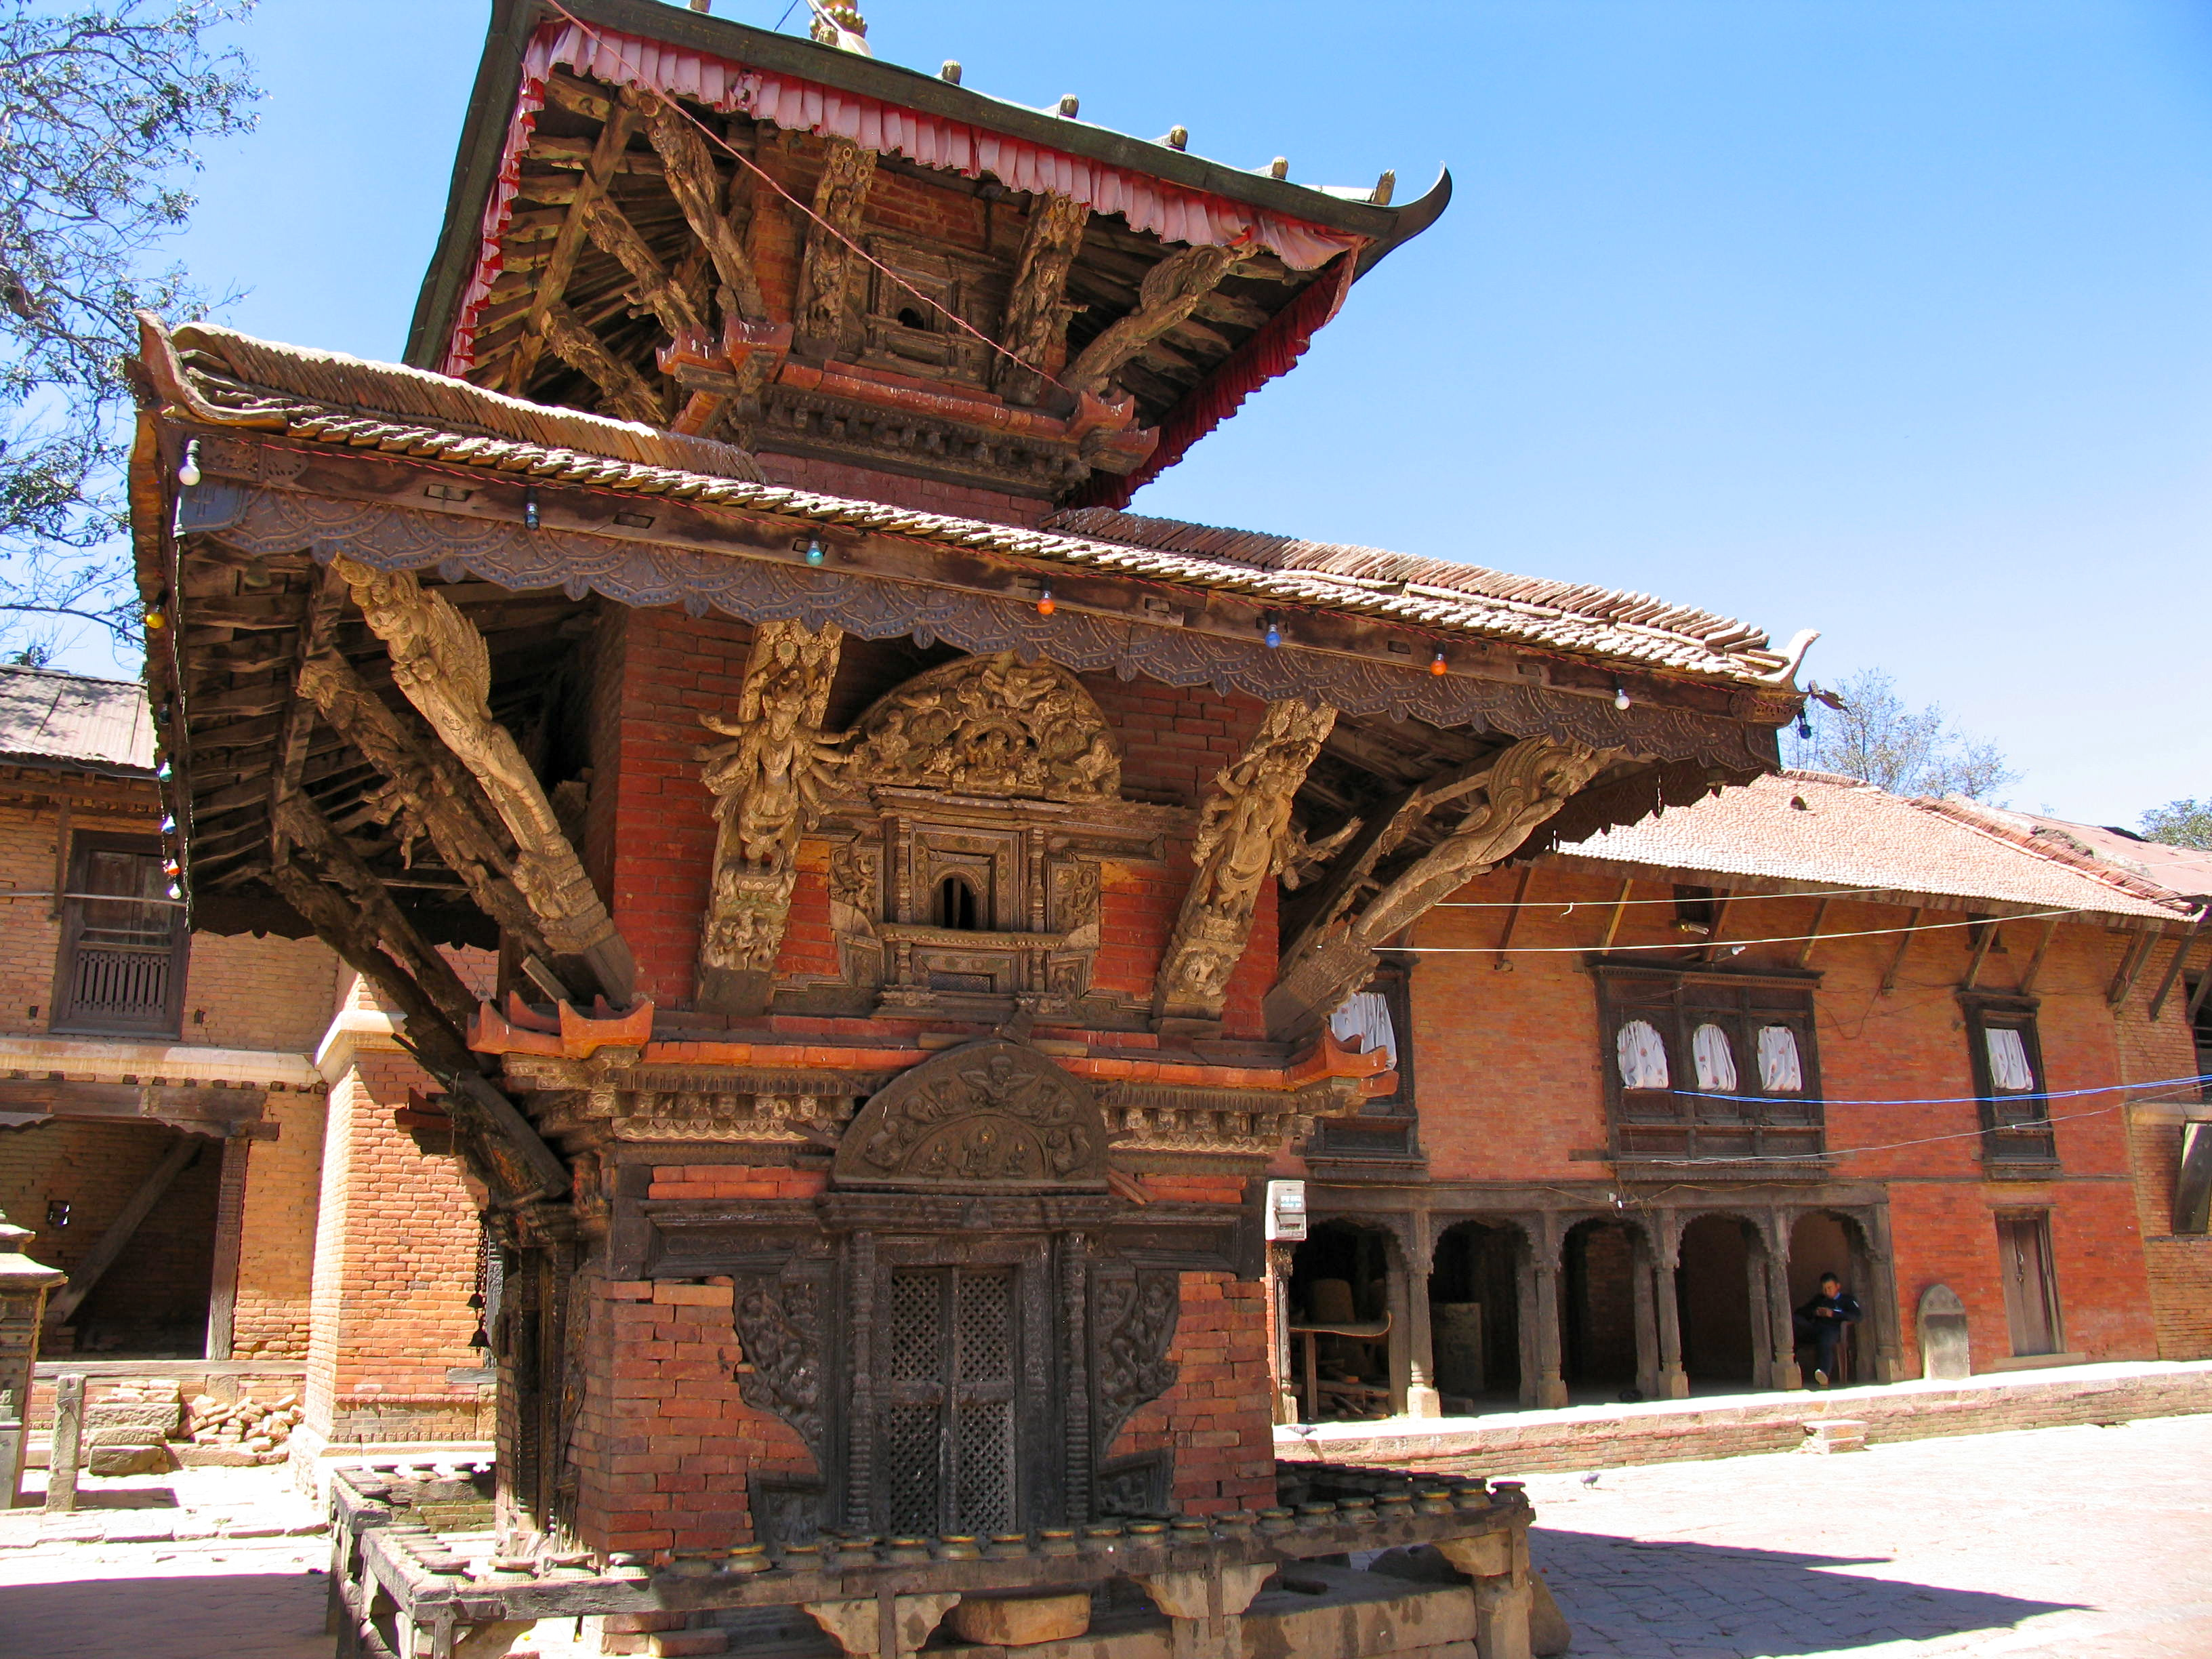 The oldest temple in Nepal, now gone